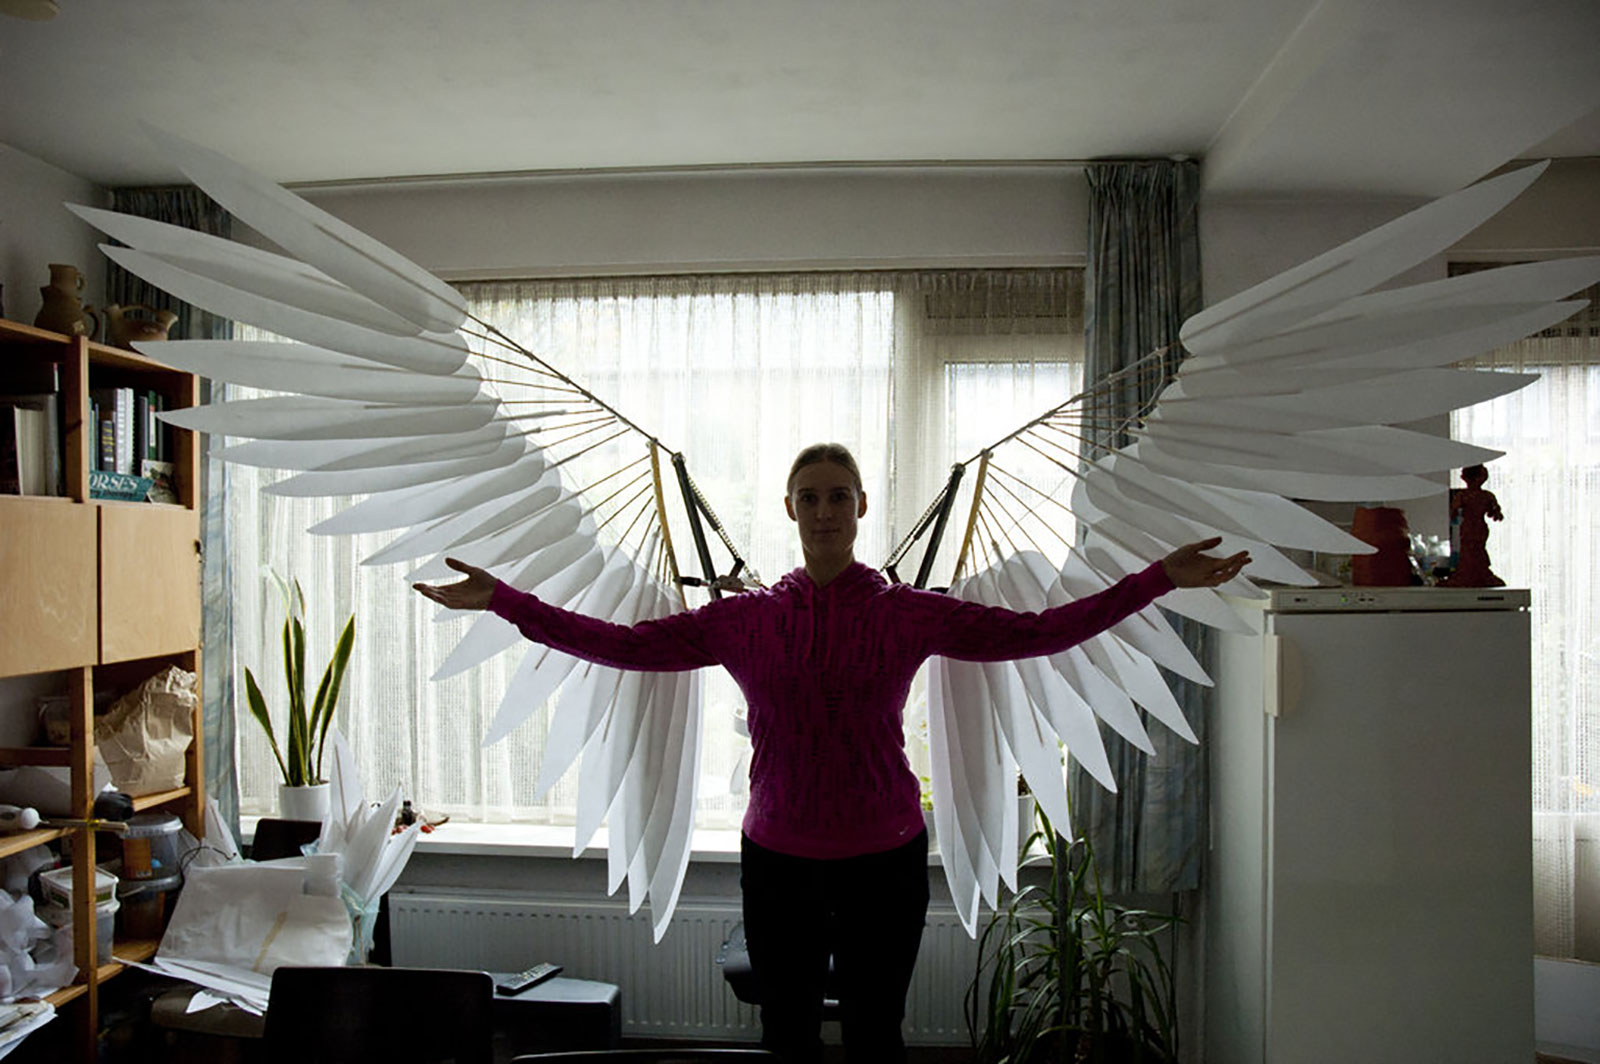 Movable wings costume